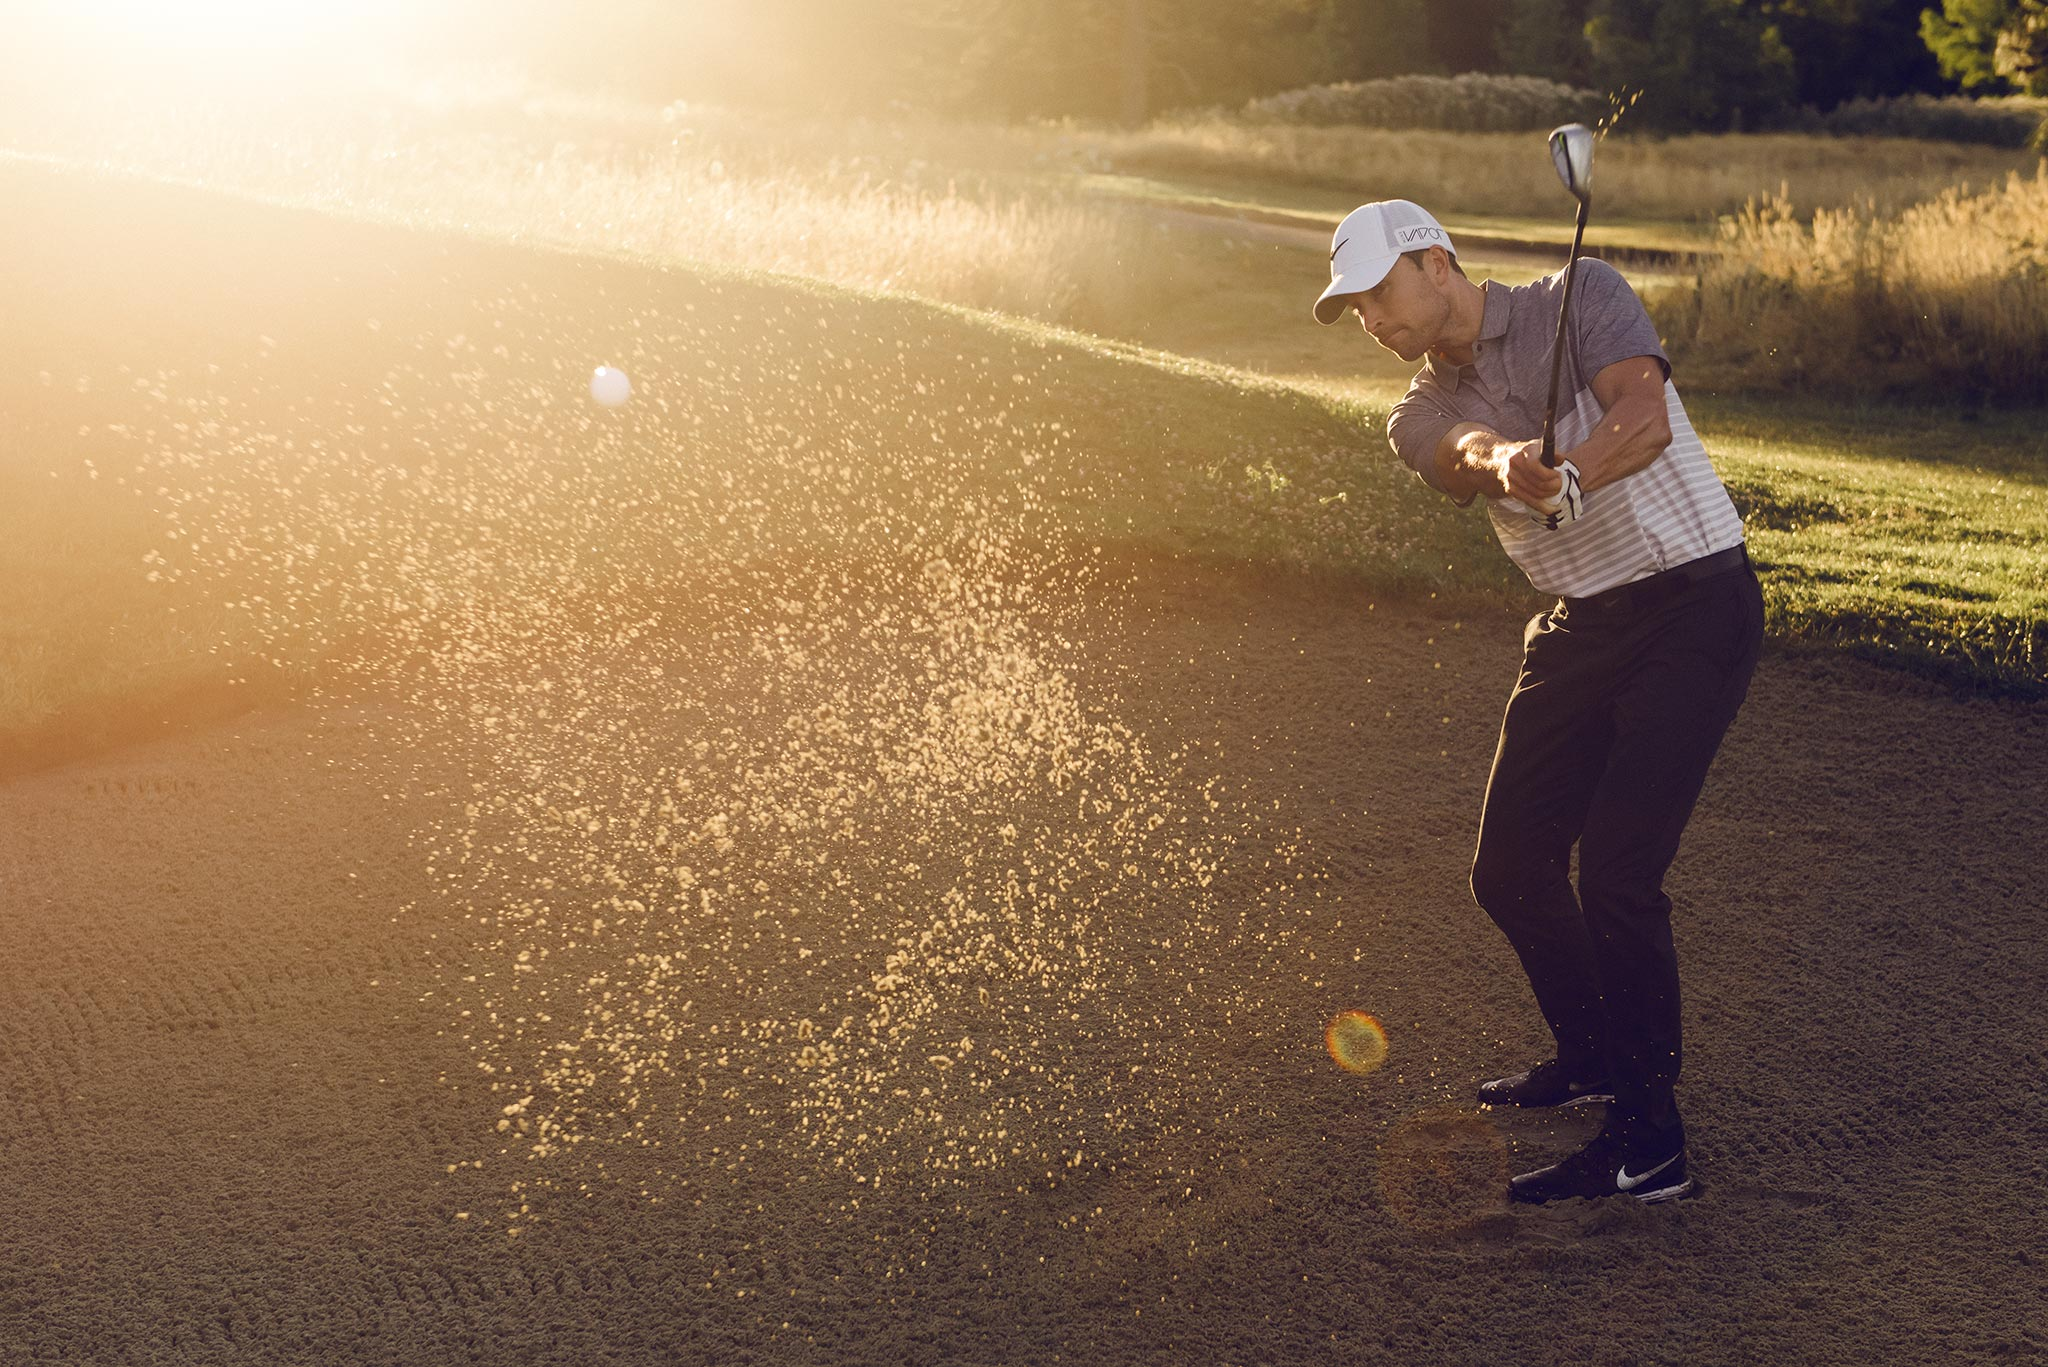 Golfer Blasts Shot Out of the Sand | Zach Ancell Photography